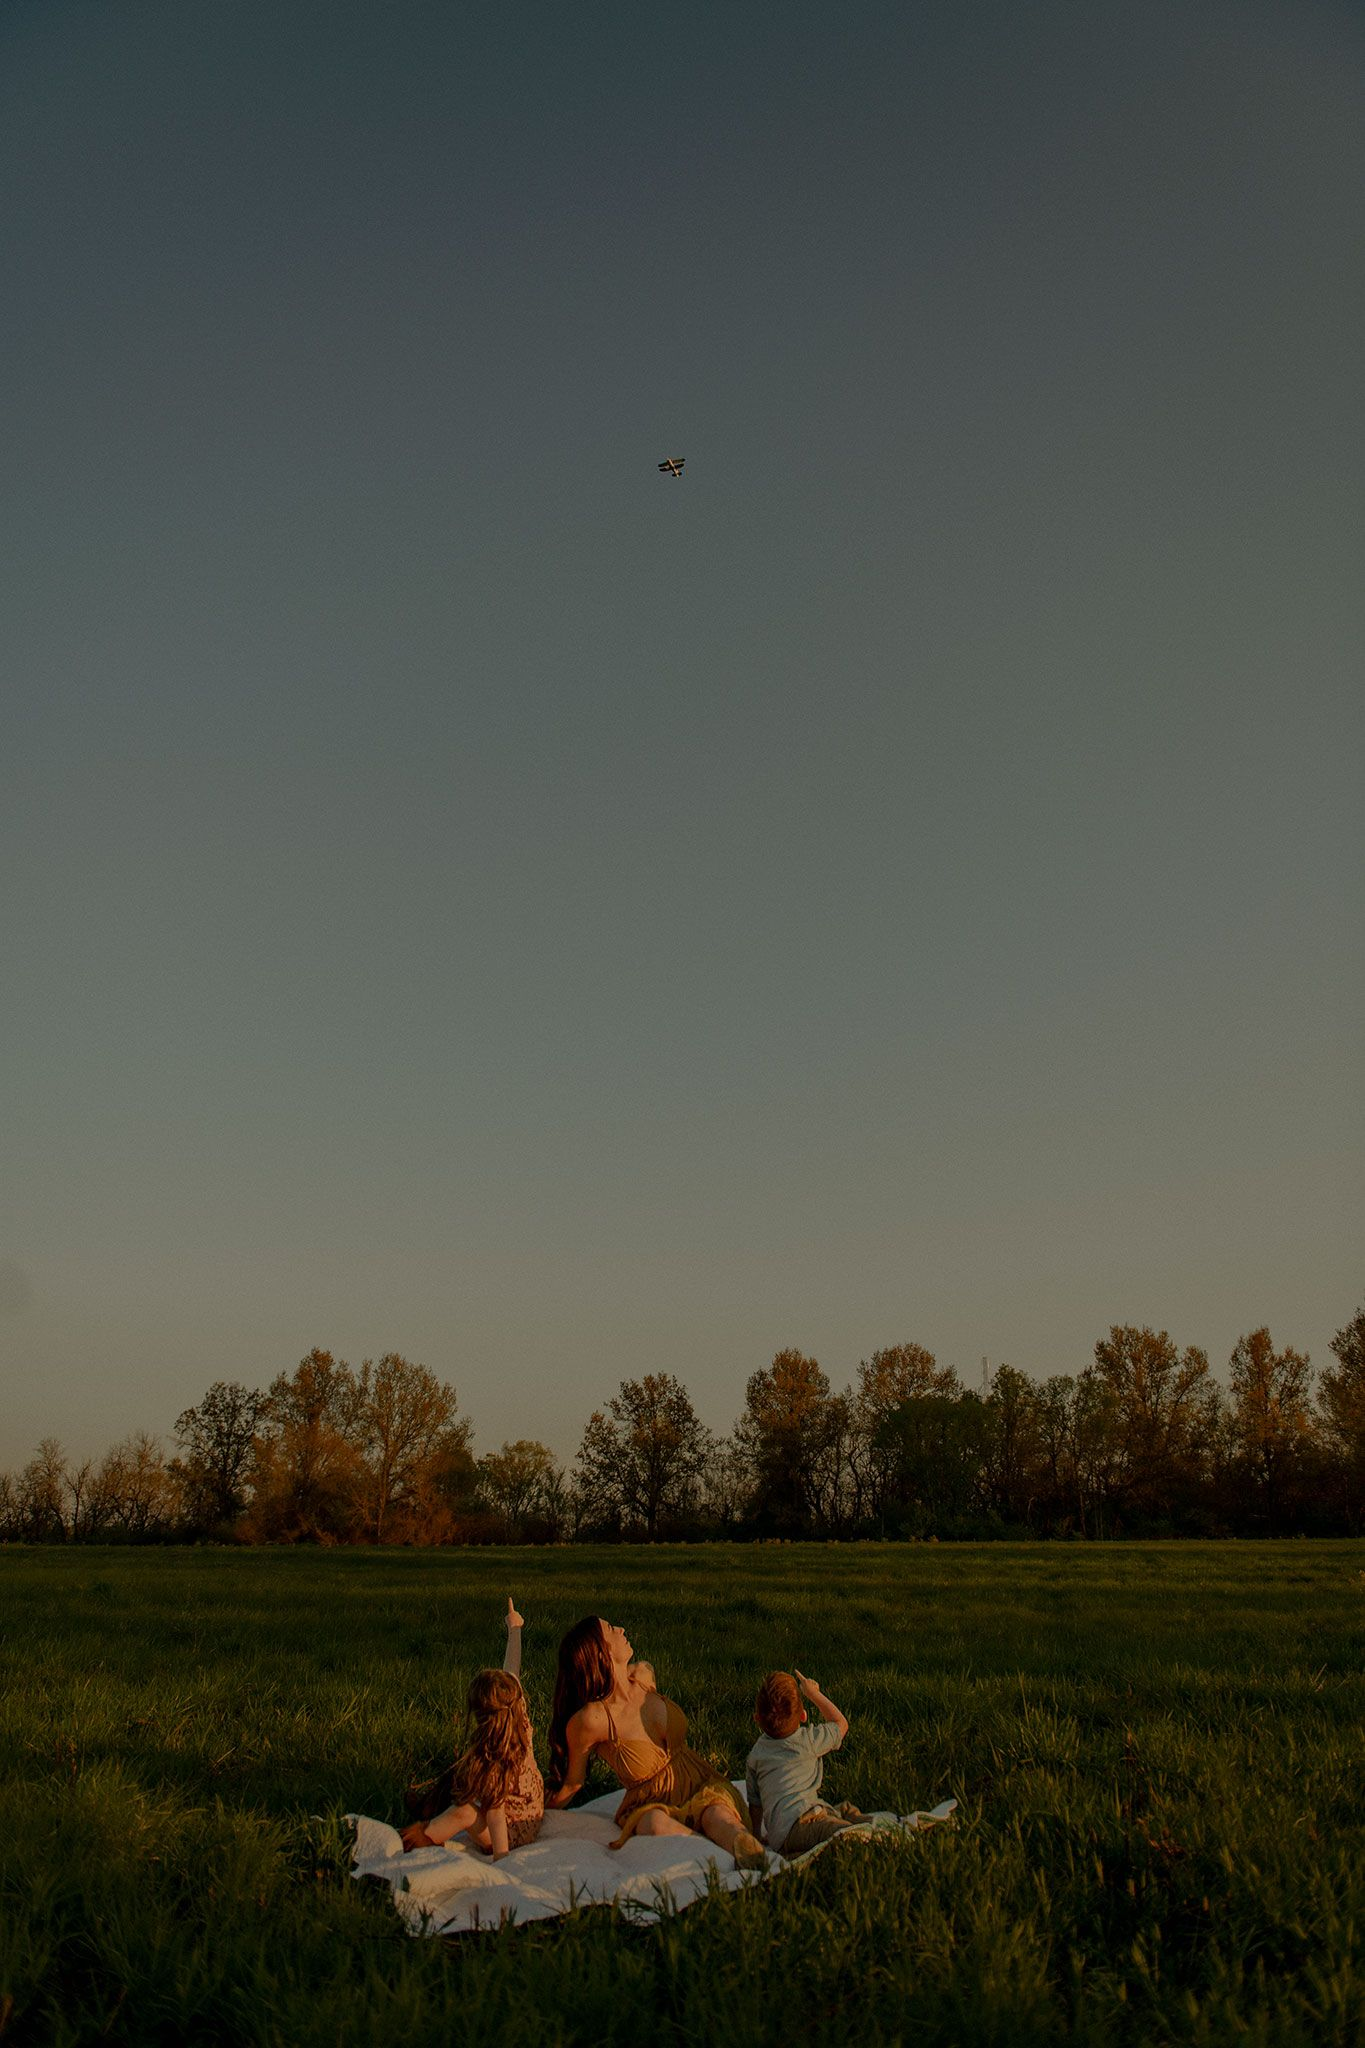 mother and young children are sitting on a blanket in the middle of a field during sunset, looking at plane